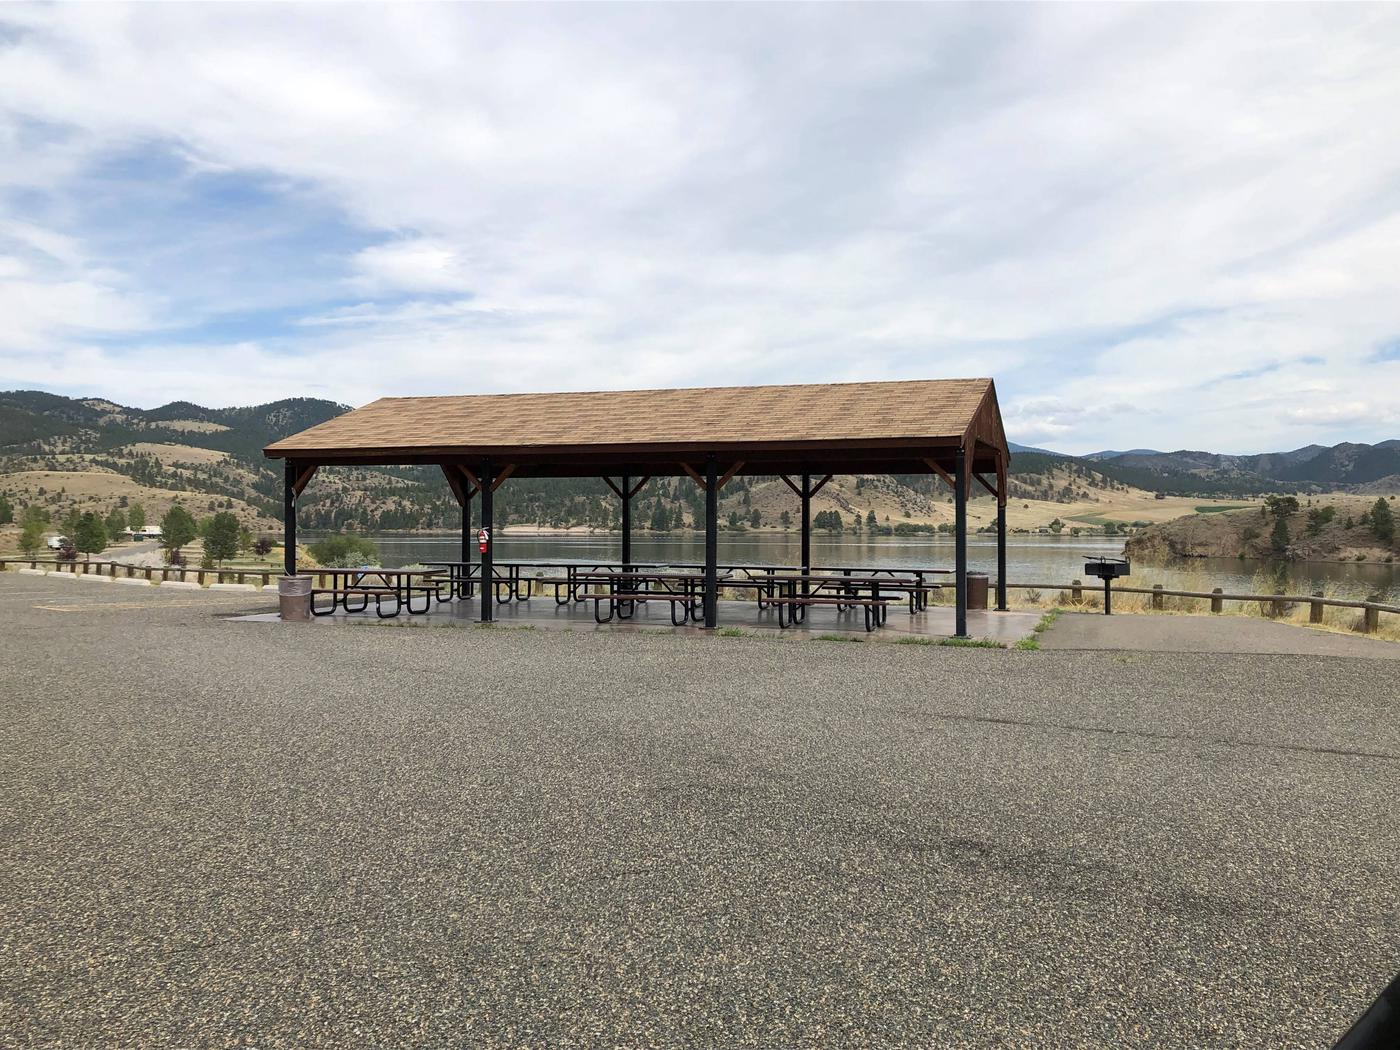 Pavilion/ramada at group camping area. BLM White Sandy Campground.